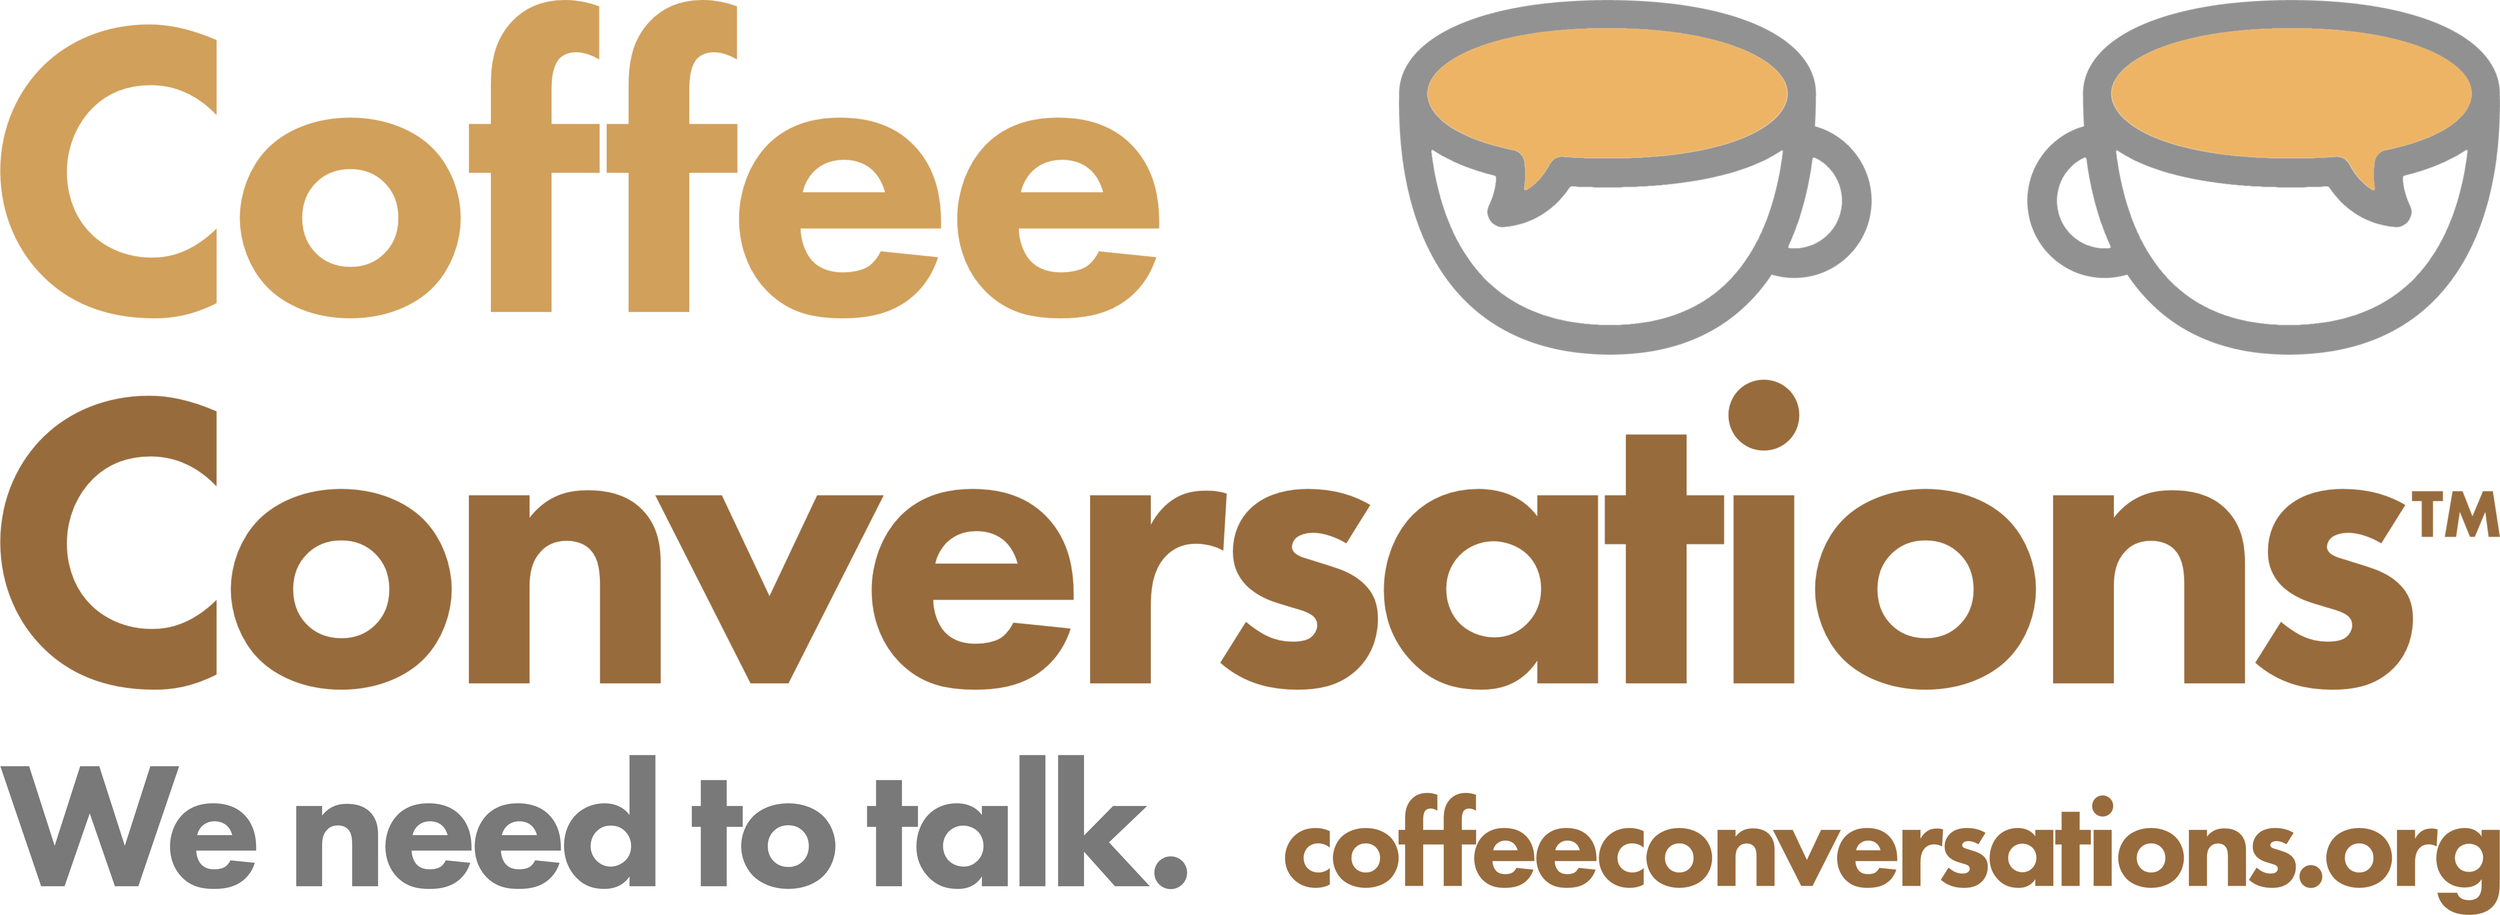 Coffee Conversations Banner 7.png